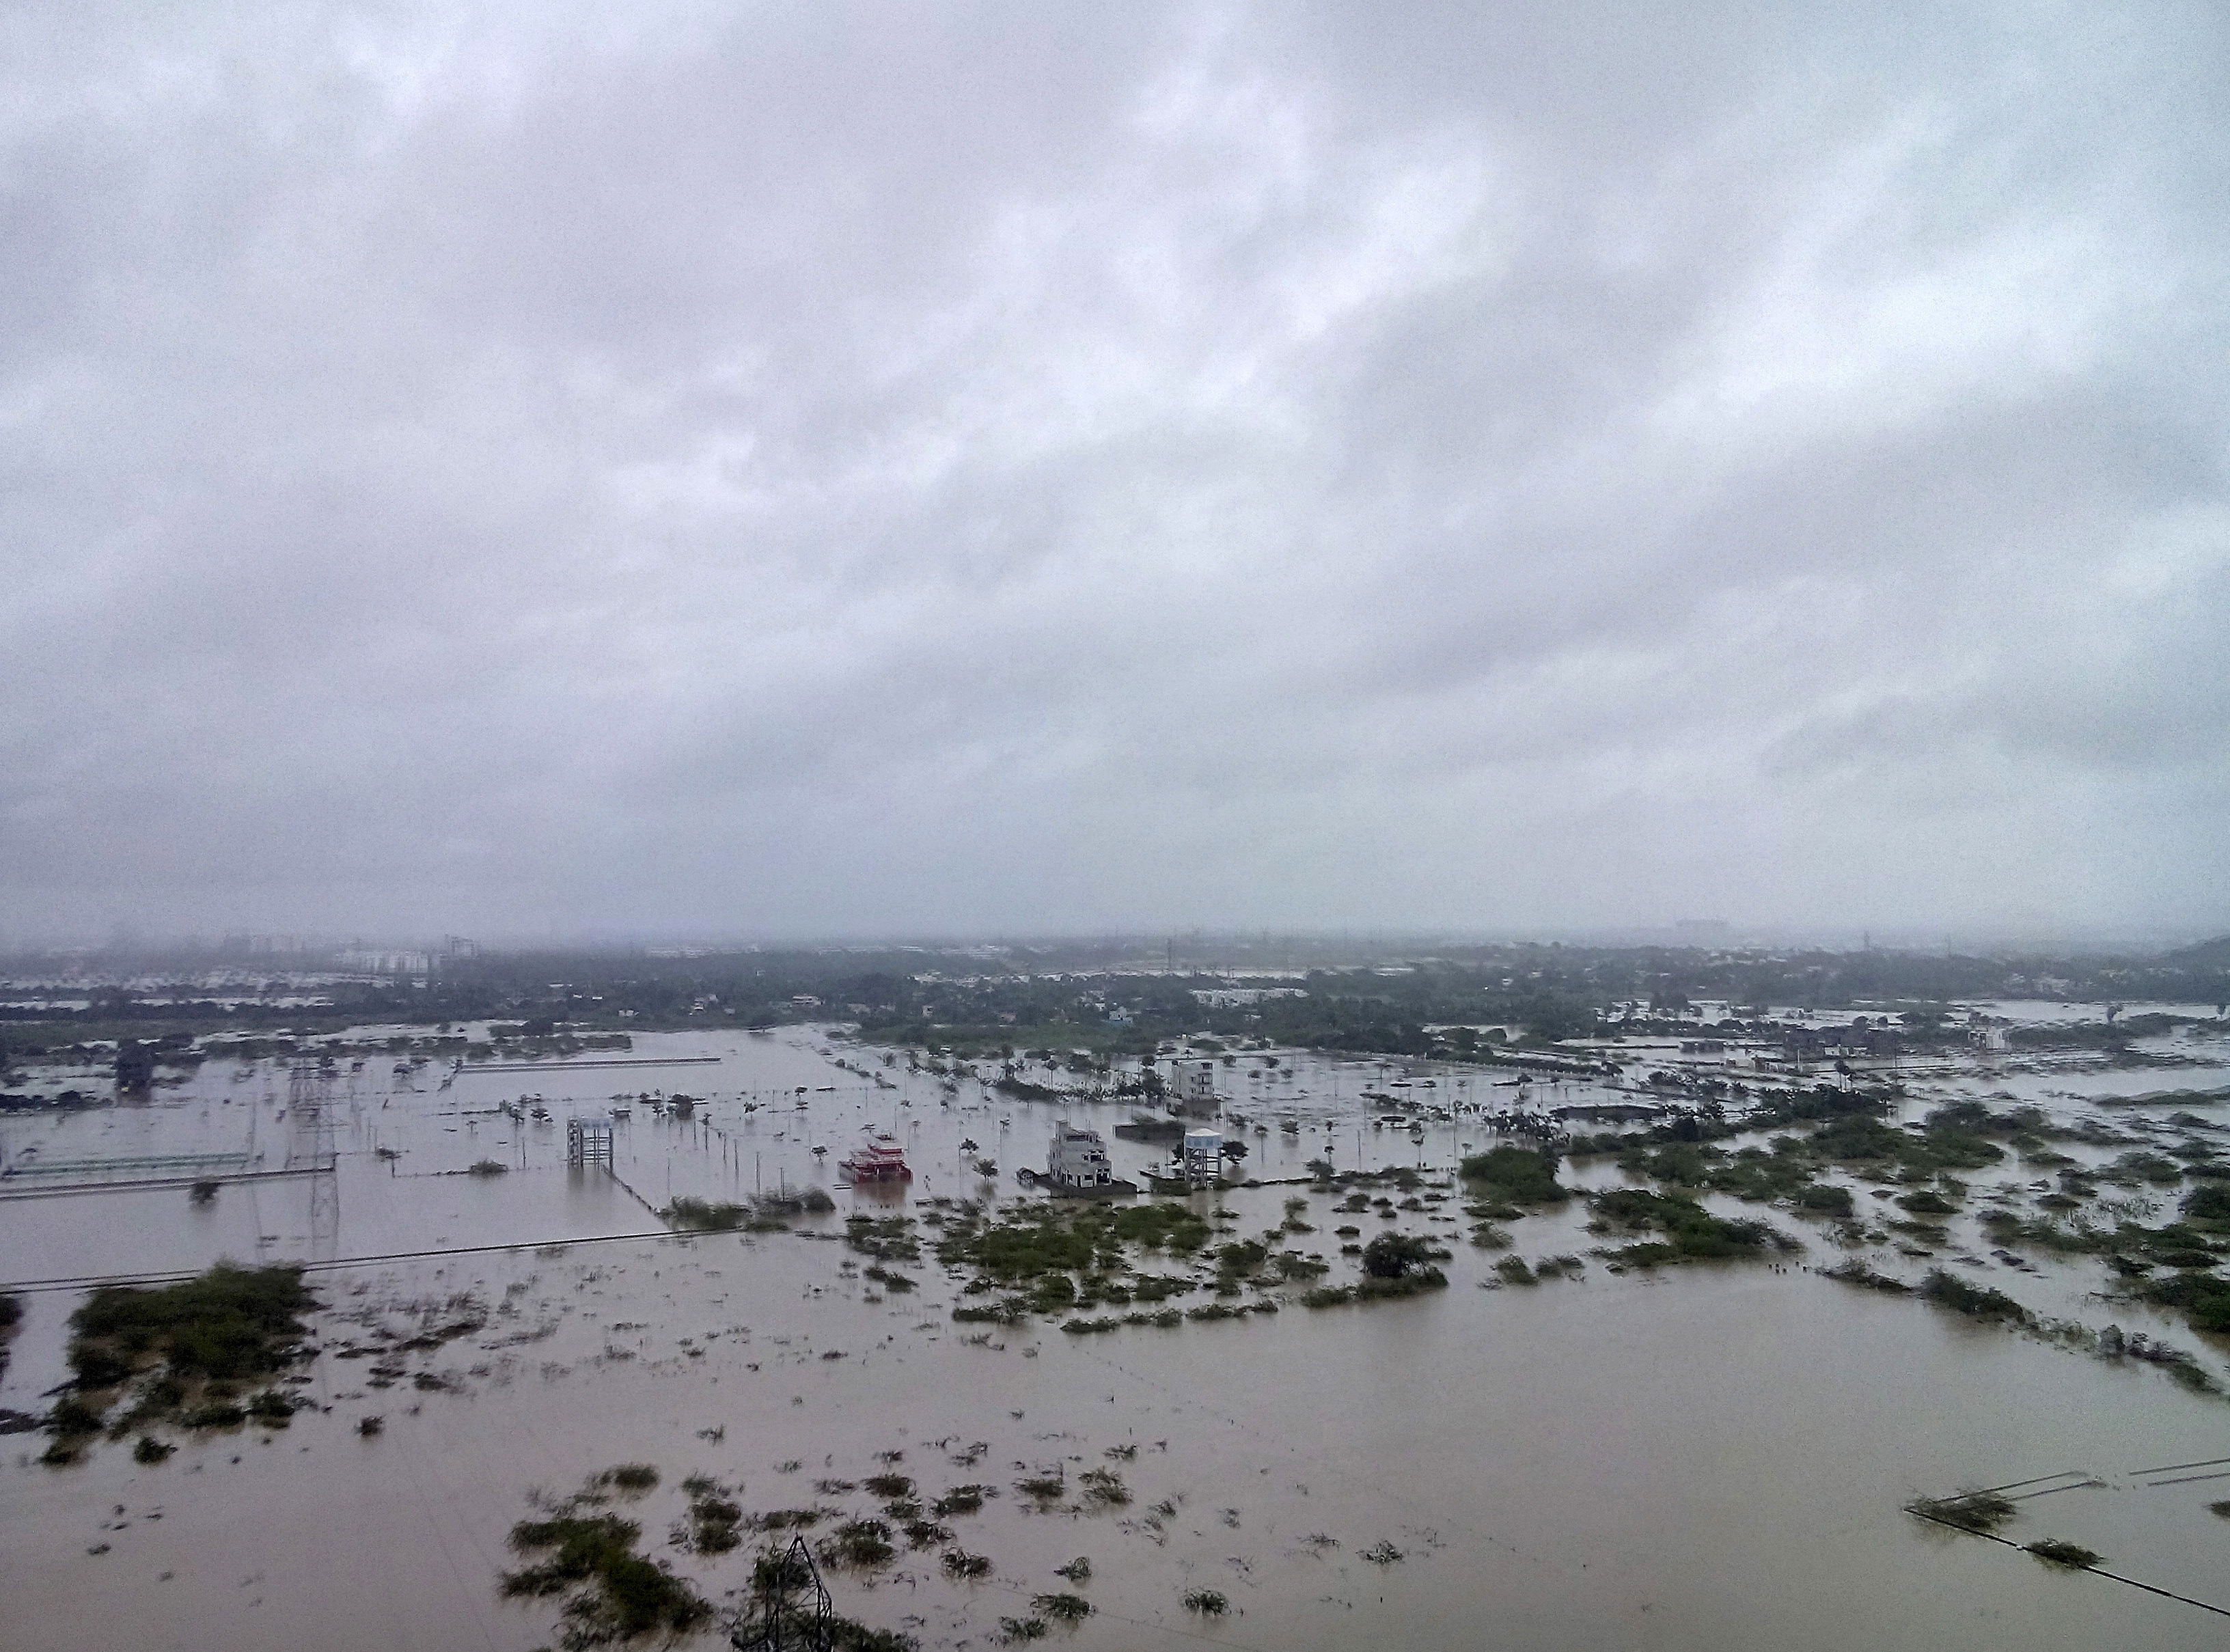 Heavy rains caused flooding in and around Chennai, India, on Dec. 2. Photo by Reuters stringer